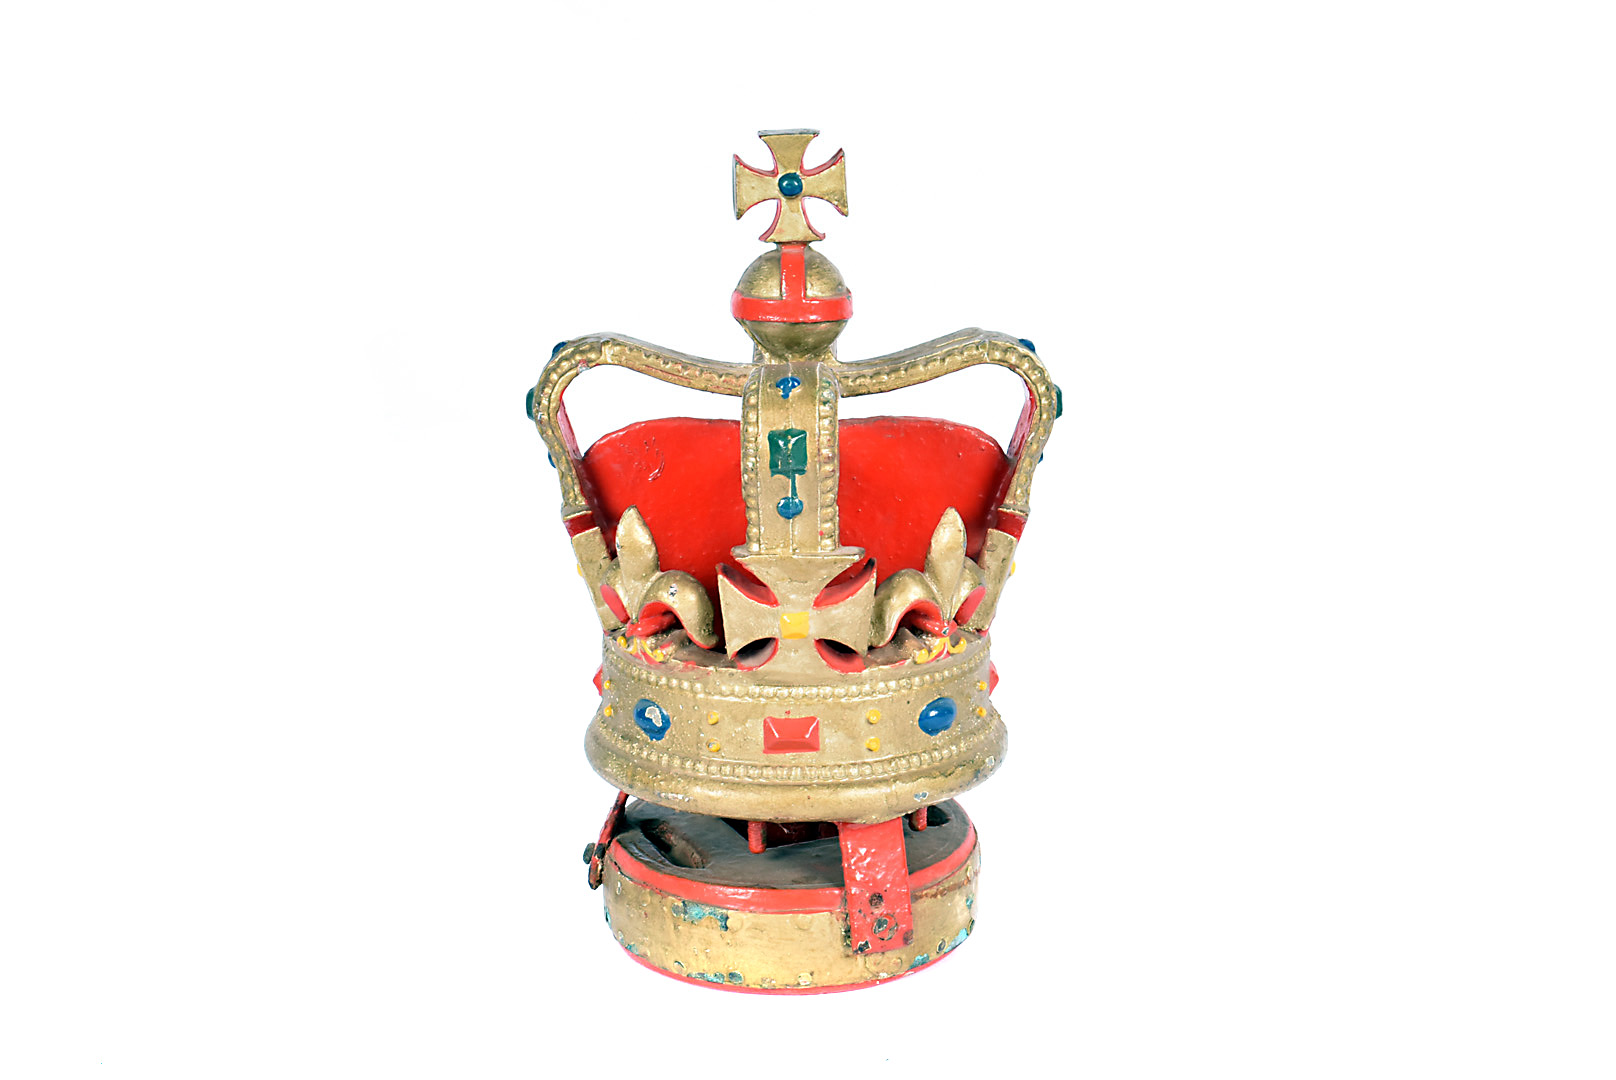 A cast iron hand painted ship's mast head, in the form of the British Queen's Crown, painted in gold